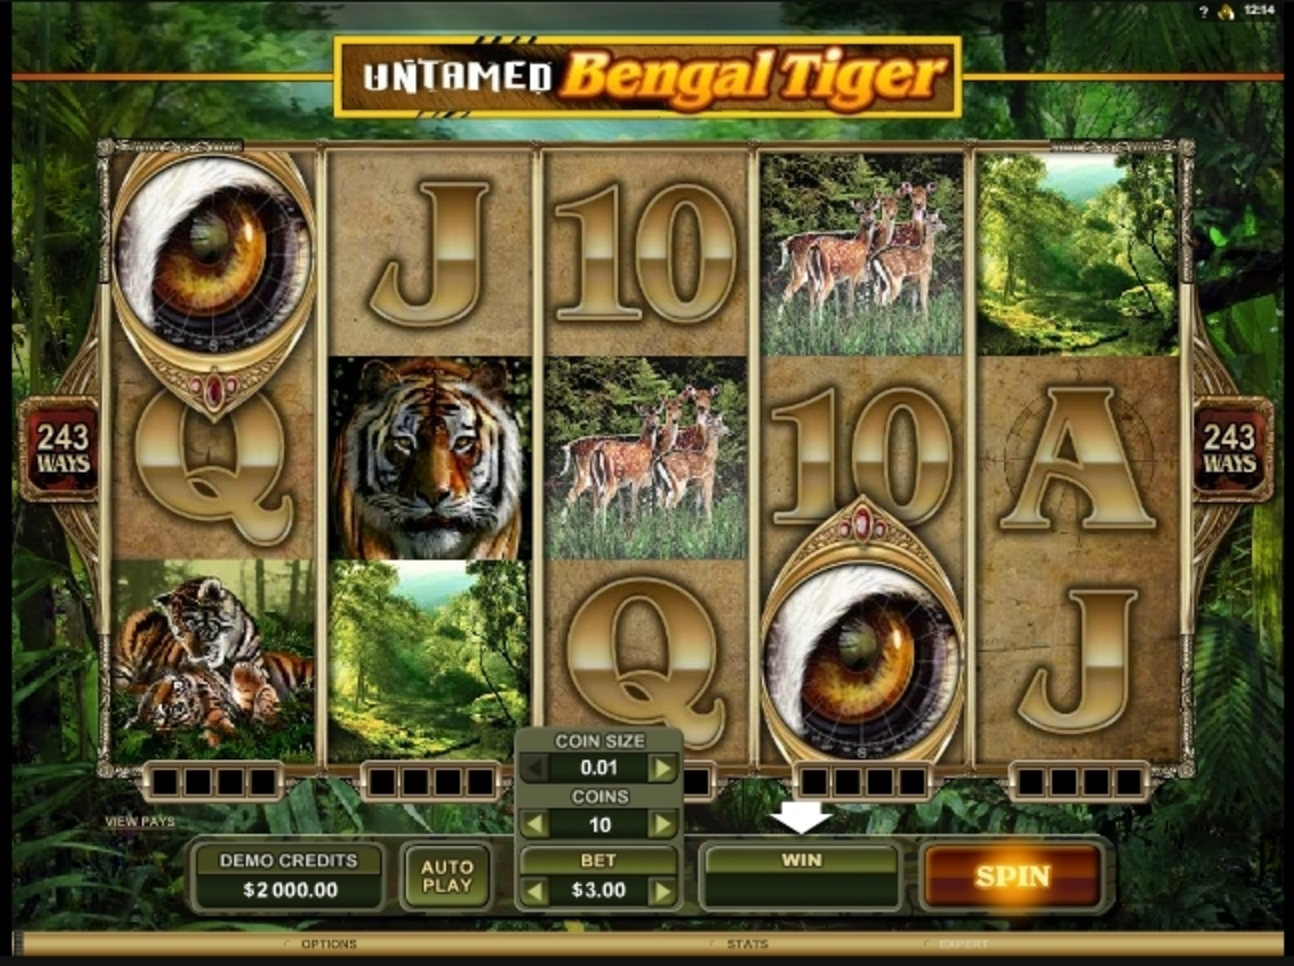 Reels in Untamed Bengal Tiger Slot Game by Microgaming